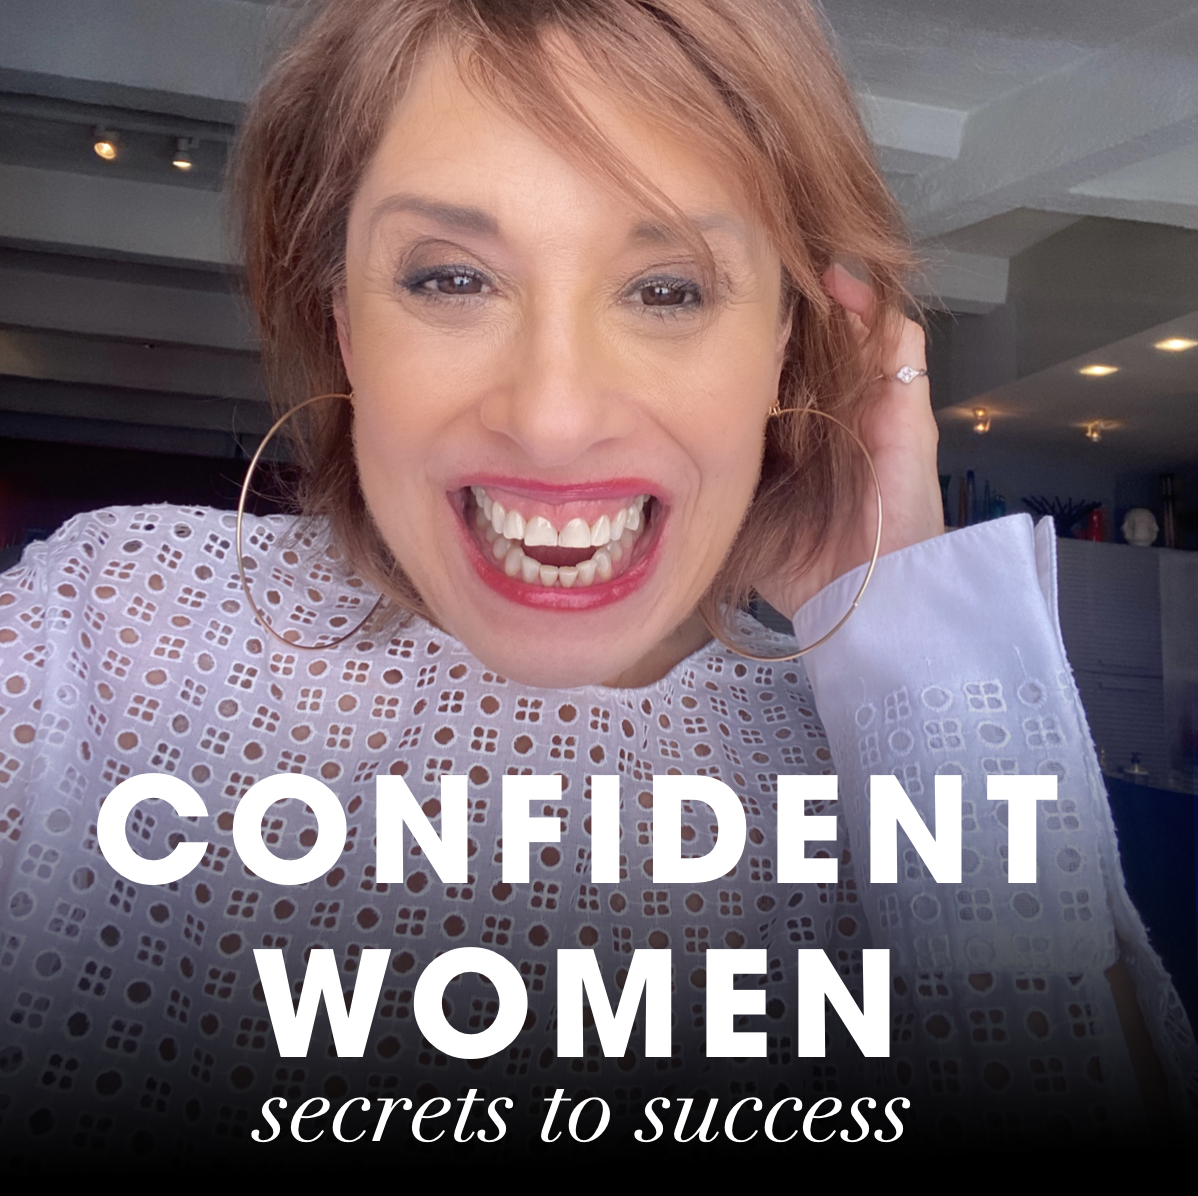 How Confident Women Over 40, 50, 60 Get Their Goals